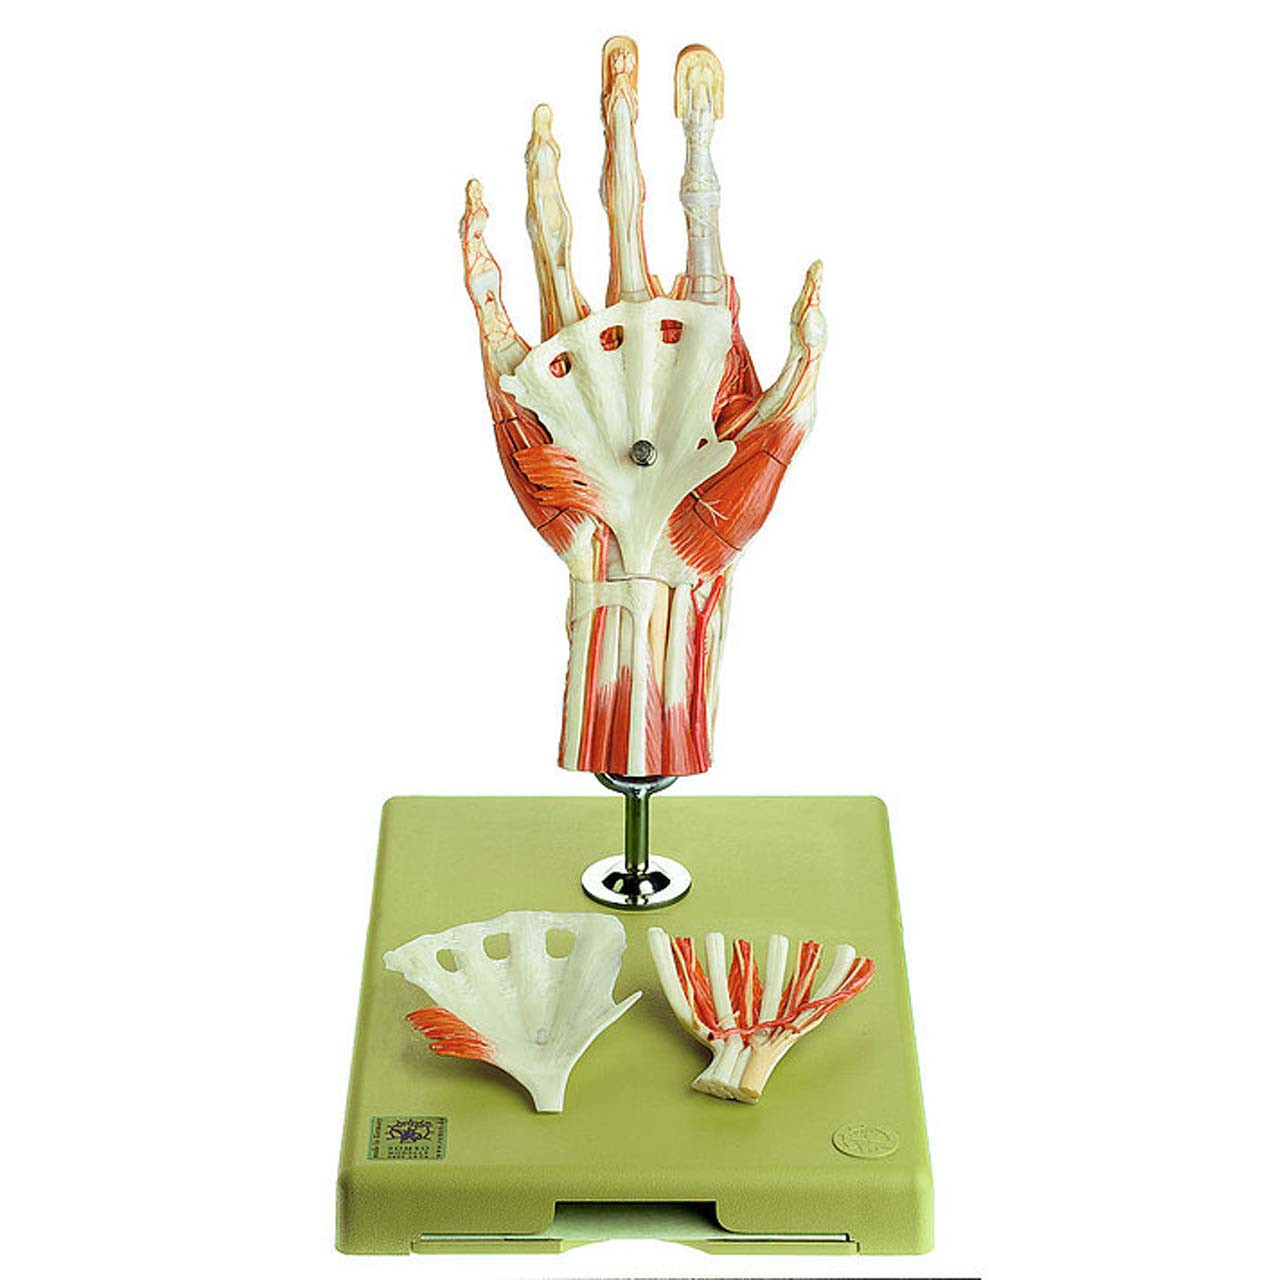 NS13/1 - Surgical Hand Model